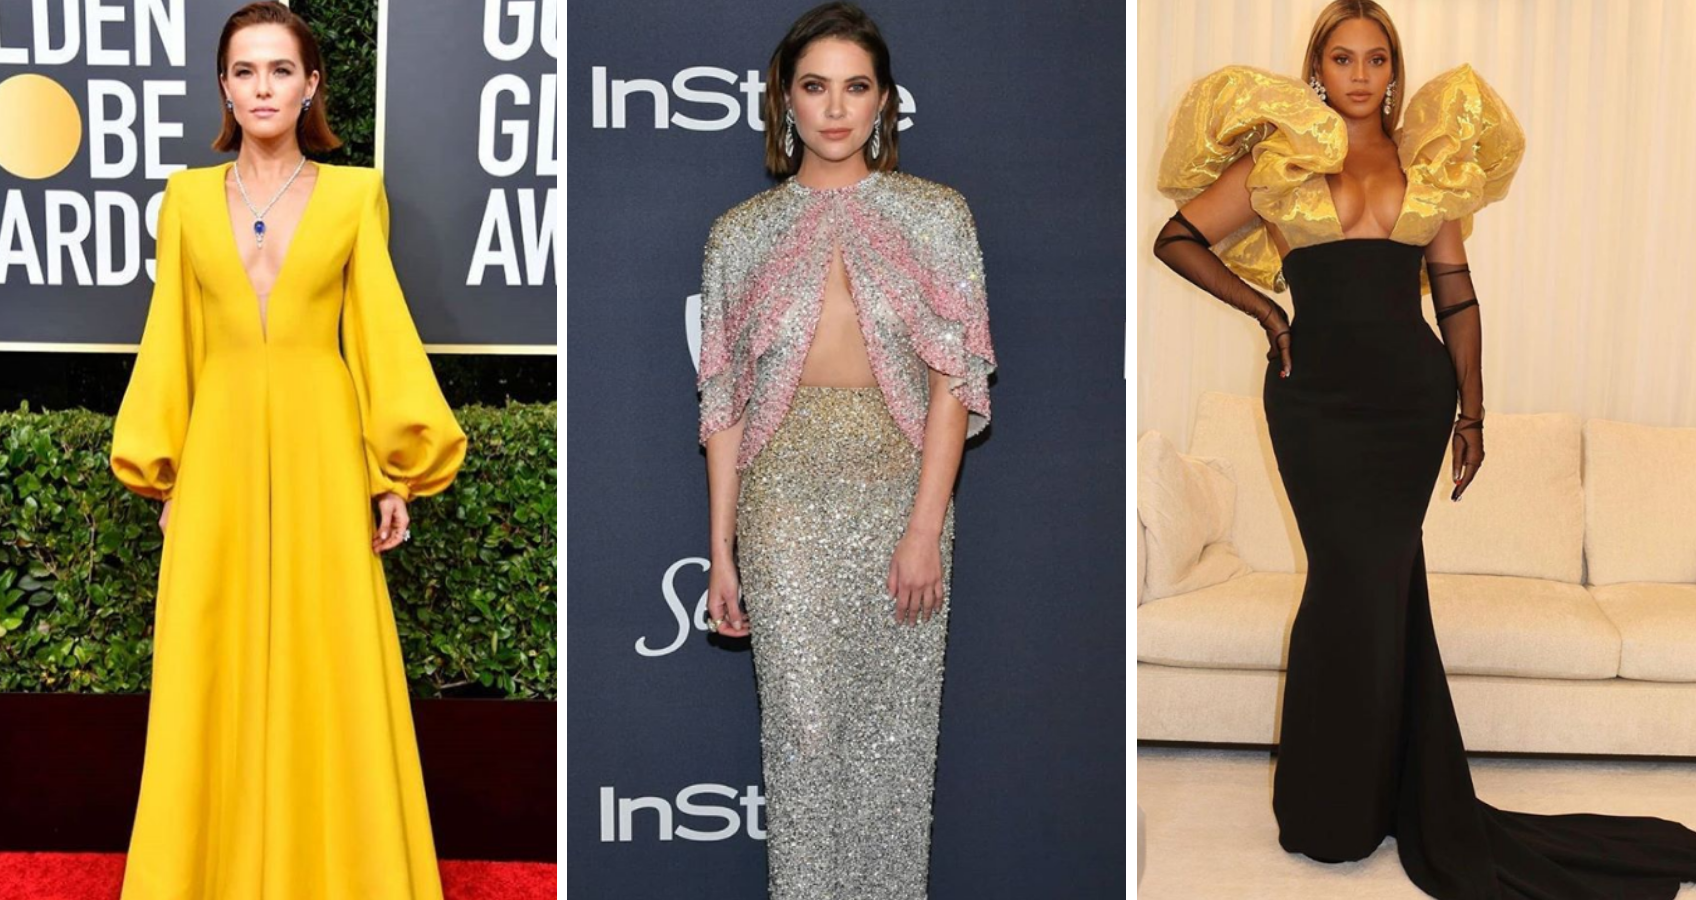 Inspiration From The Golden Globes Red Carpet